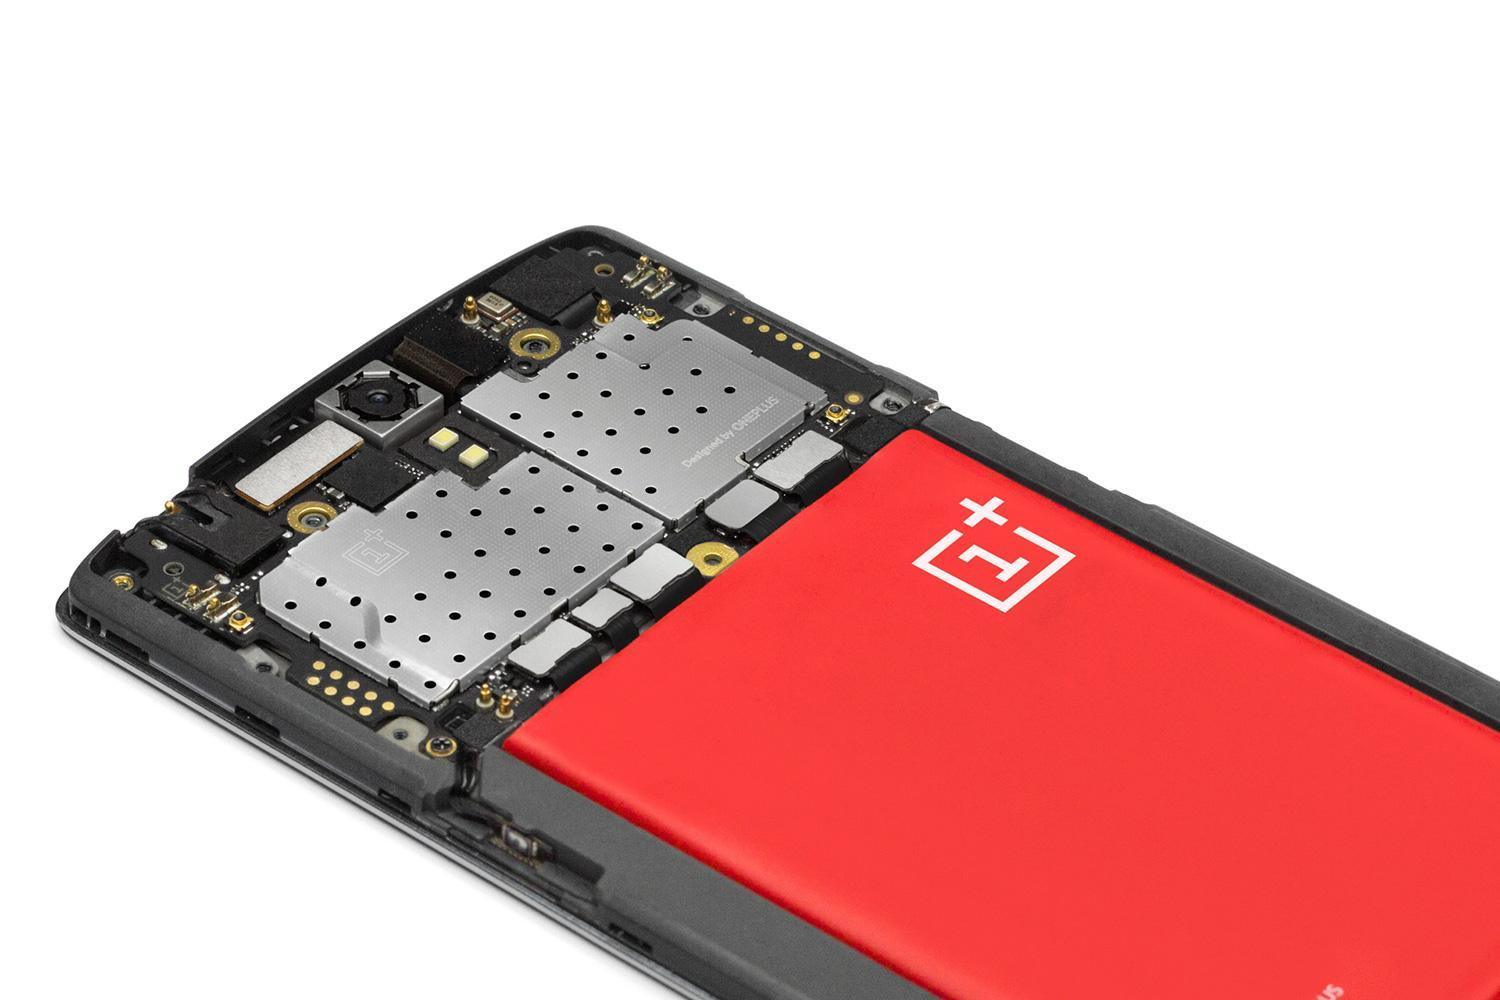 OnePlus Dash Charge, une possible technologie de charge rapide brevetée